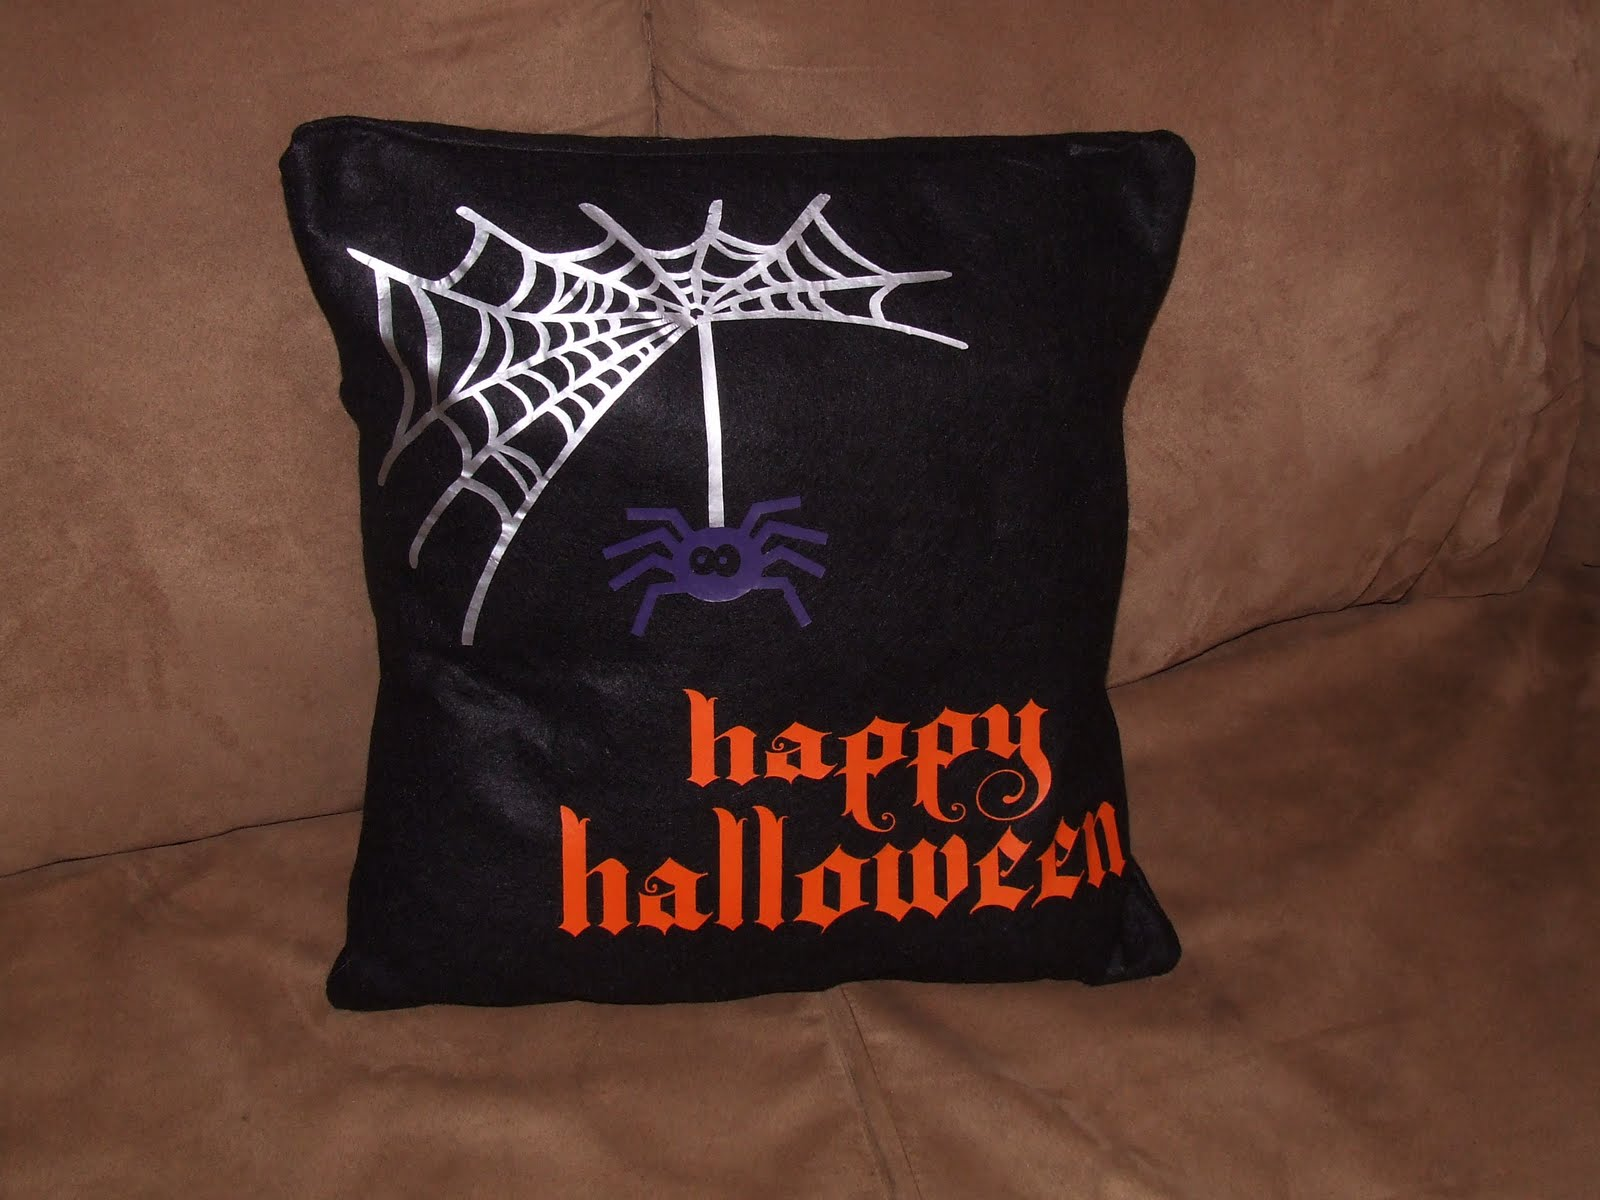 tutorial tuesday: halloween pillow • keeping it simple